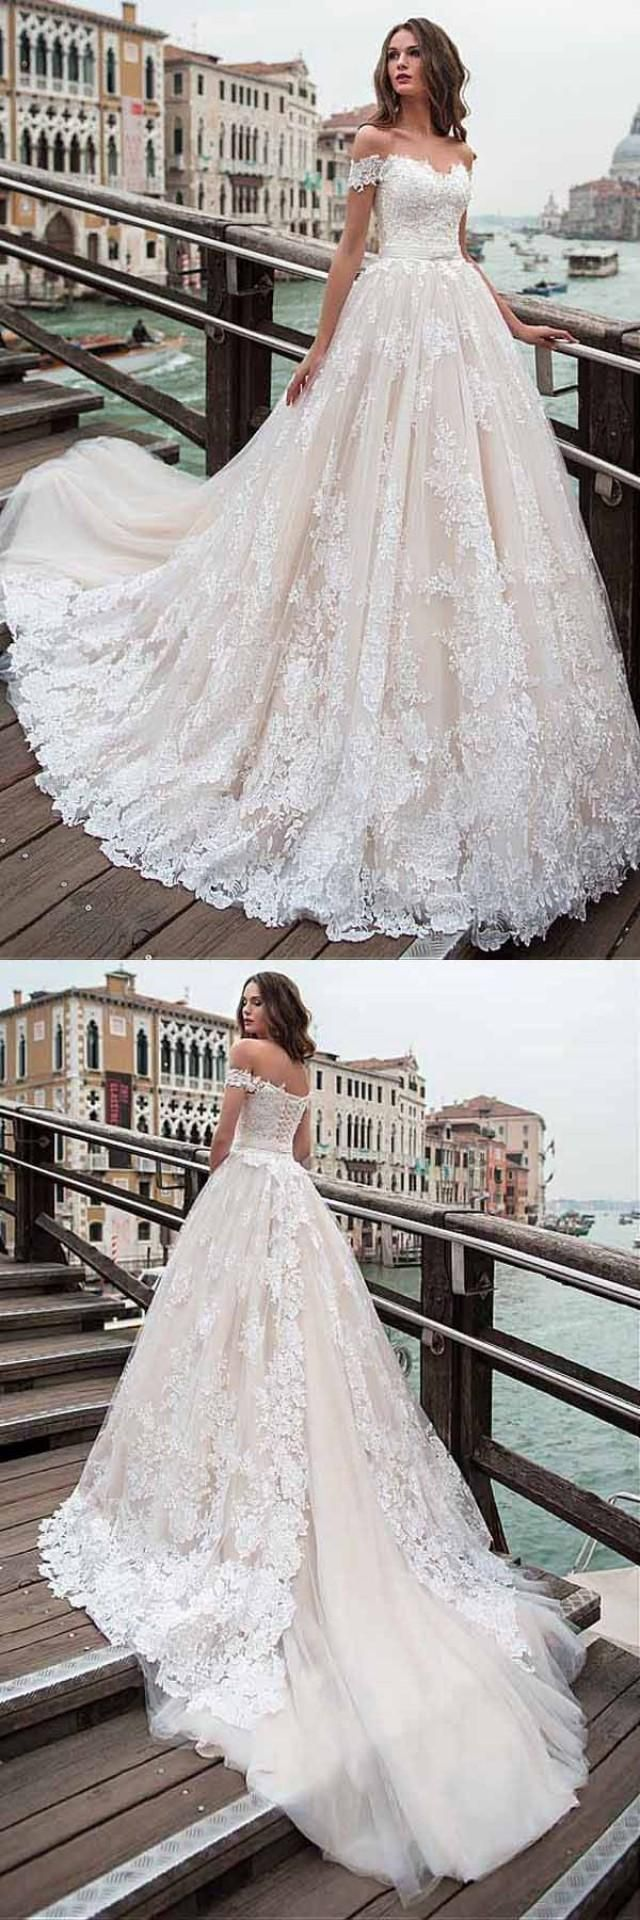 Romantic white lace wedding dressoff shoulder aline bridal dress